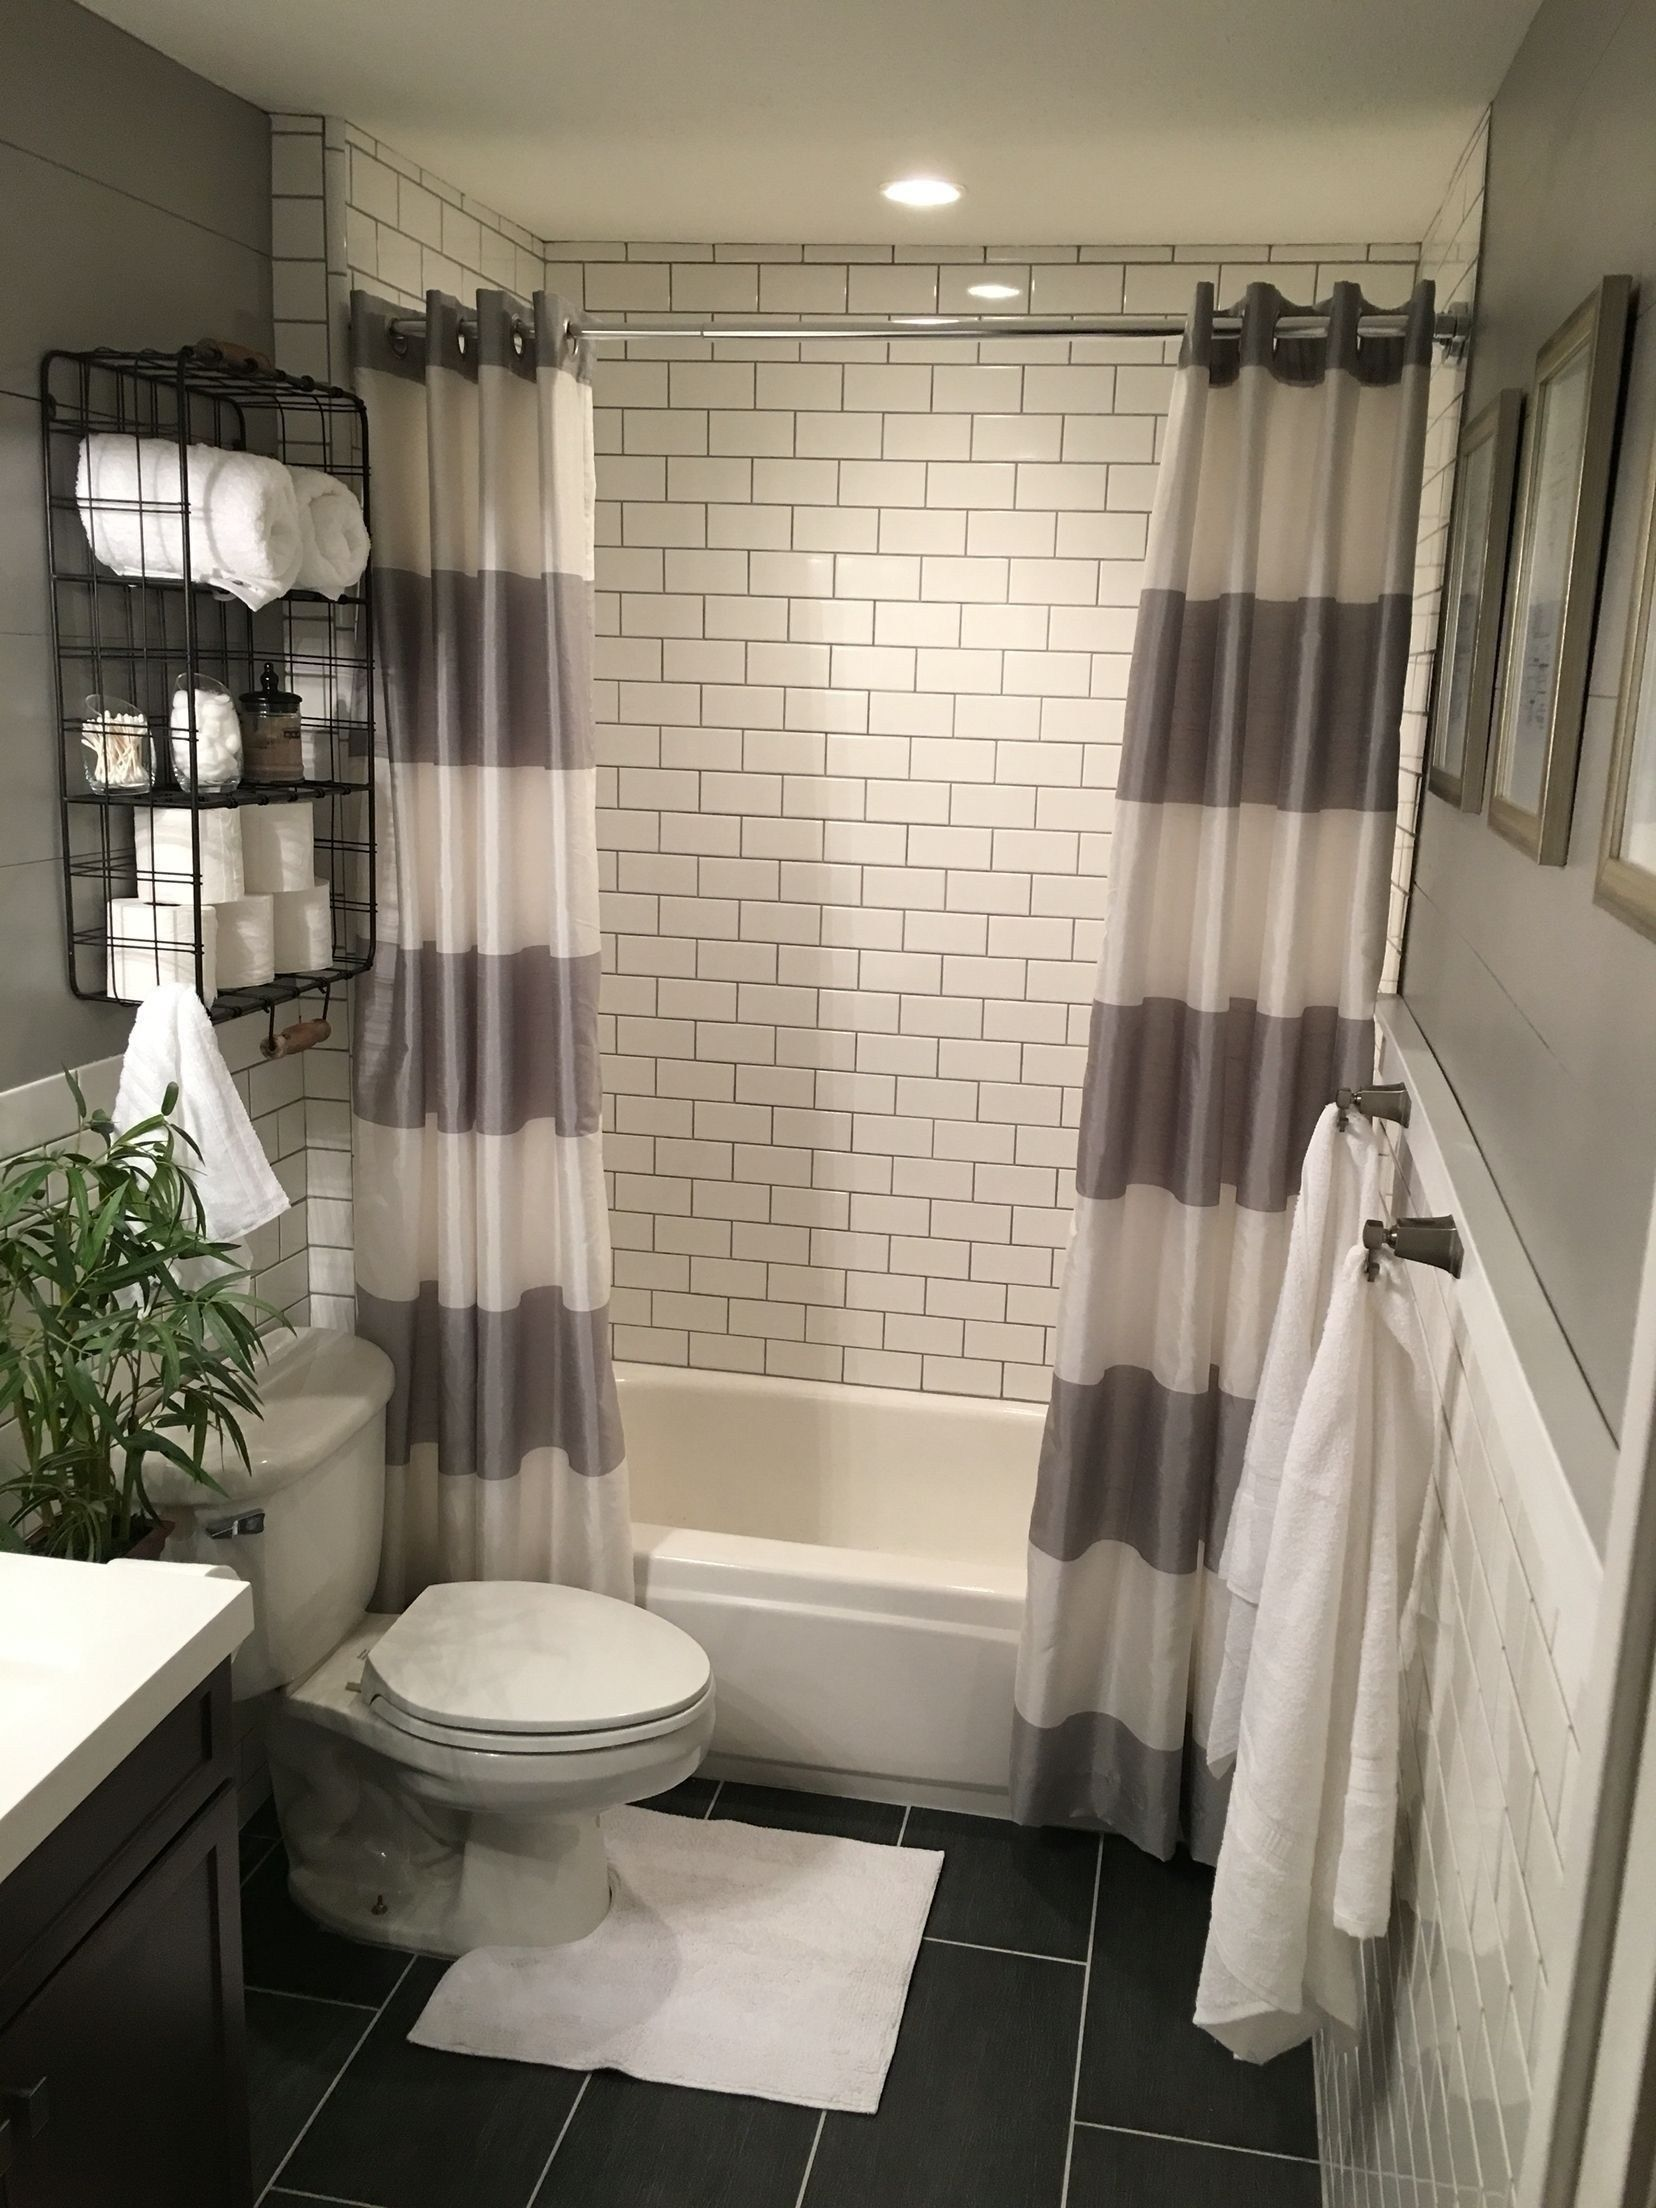 46 simple guest bathroom makeover ideas on a budget